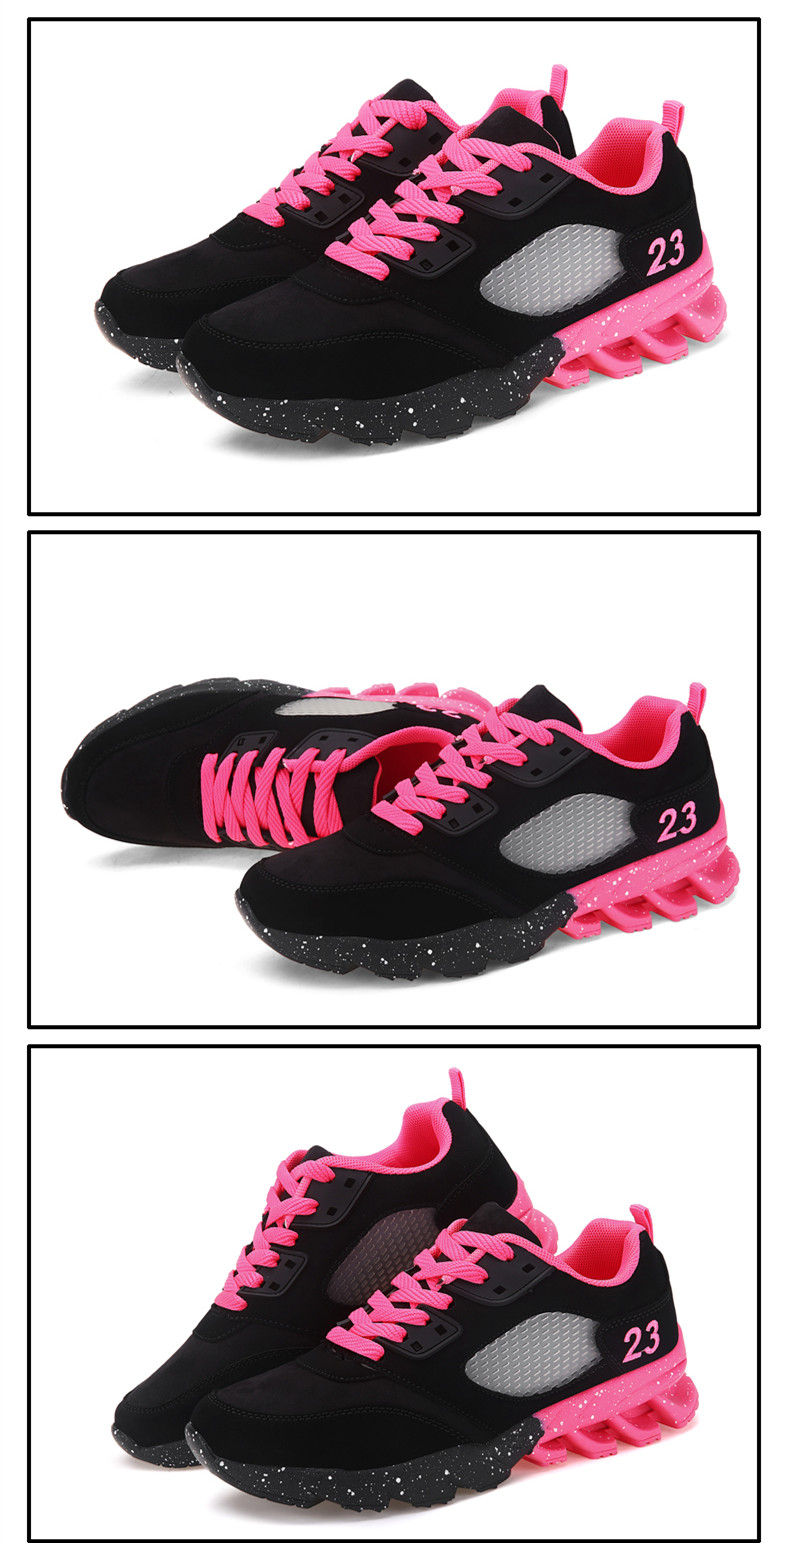 17 New Womens and Girl Brand cheap Running Shoes Outdoor Breathable Athletic Jogging Sneakers student Sport Blade Shoes black 7